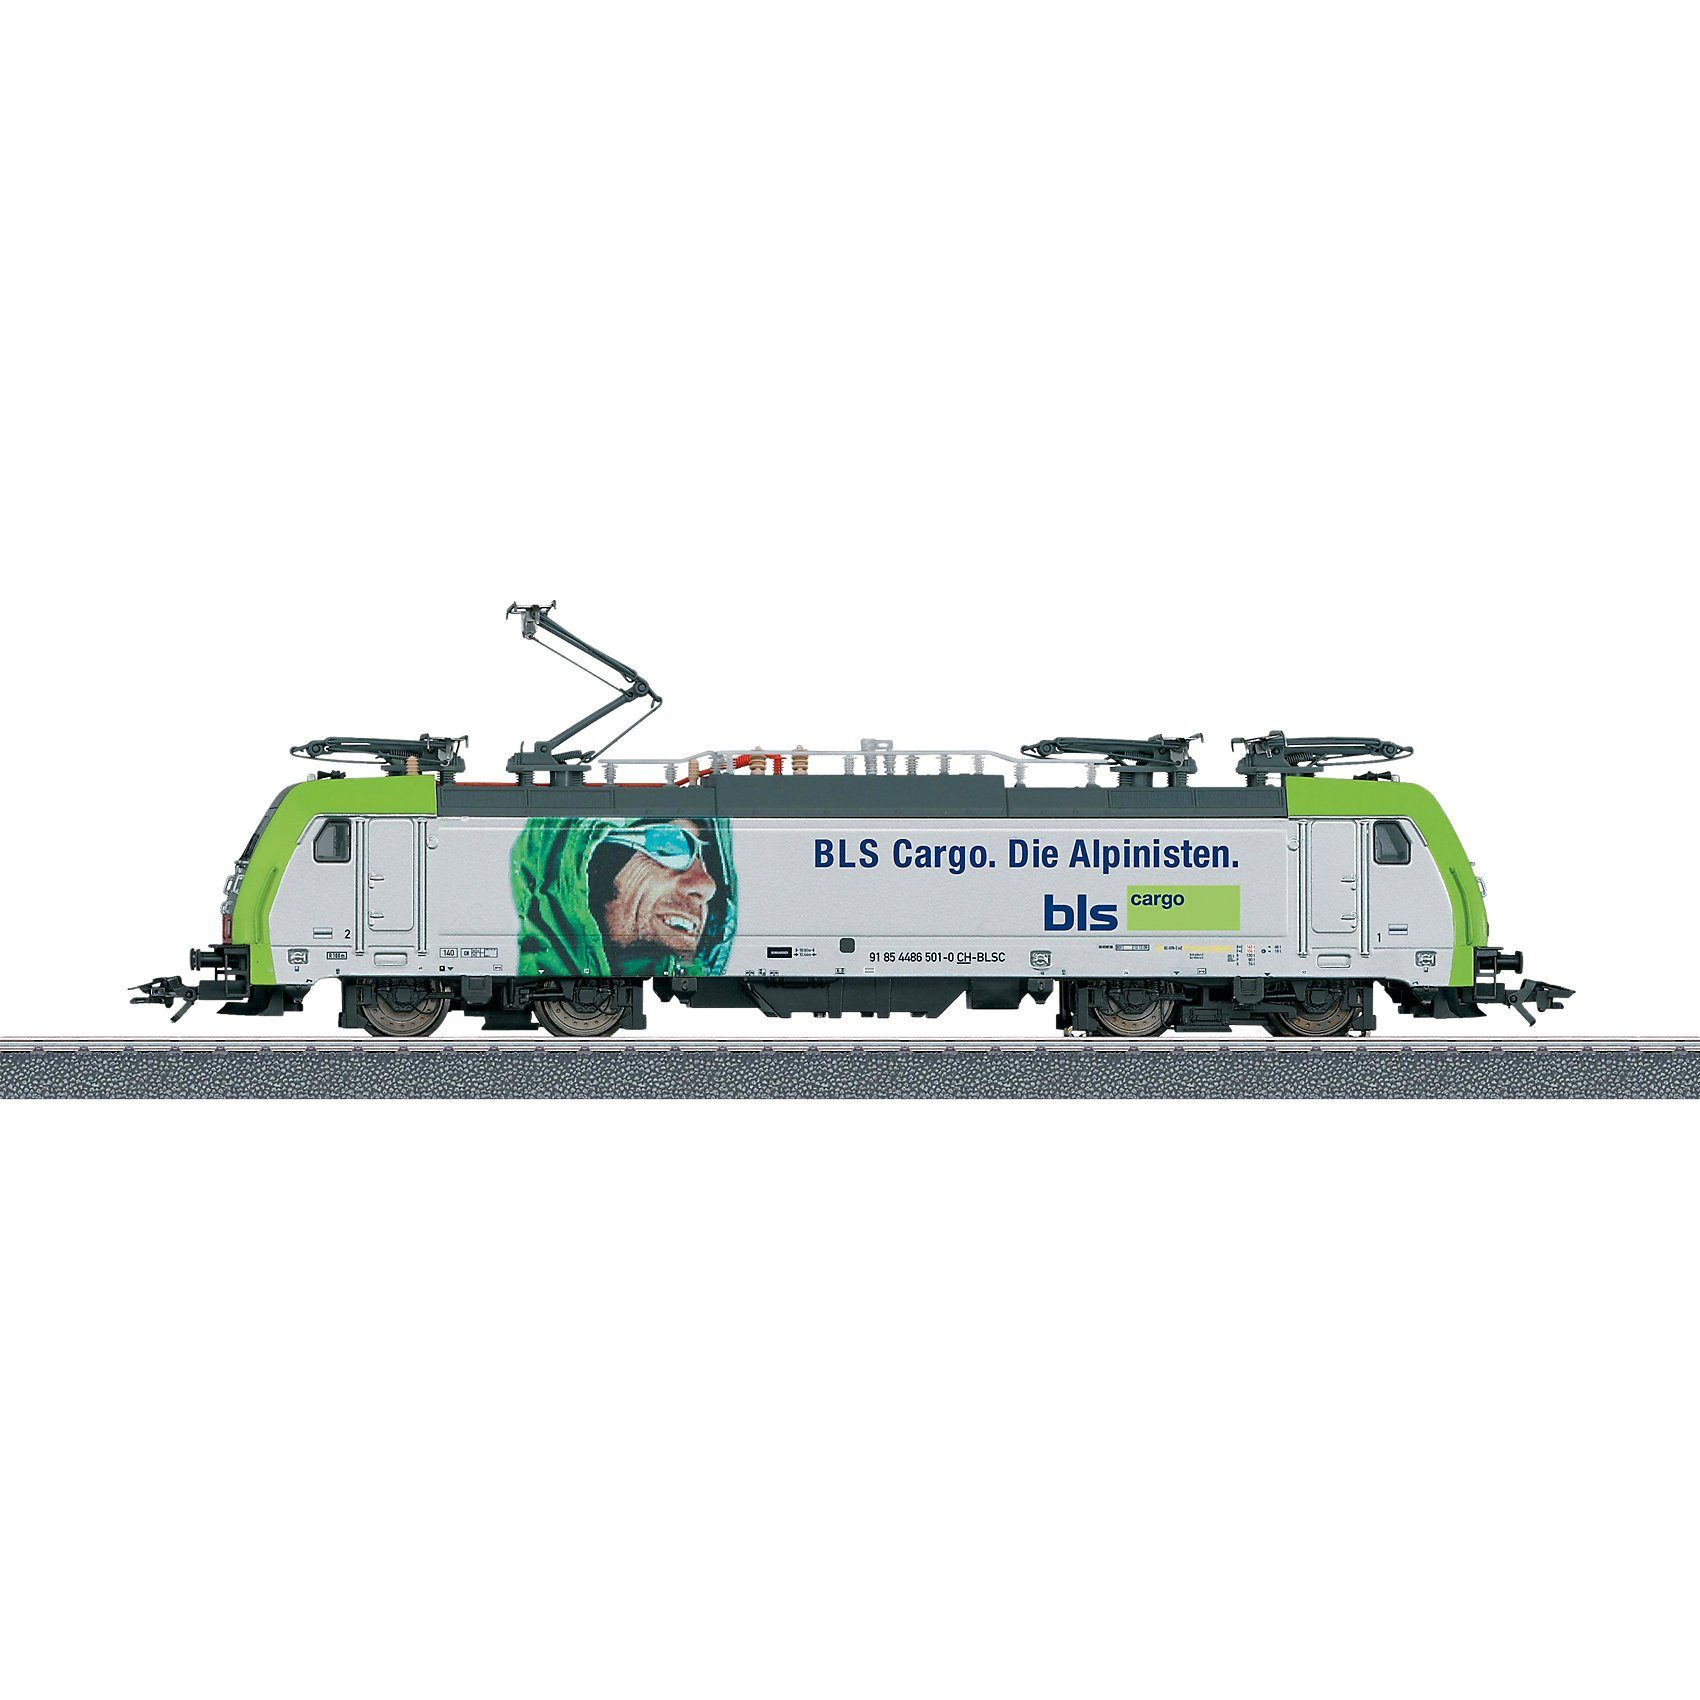 Märklin START UP 36624 Elektrolokomotive Reihe 486 der BLS AG